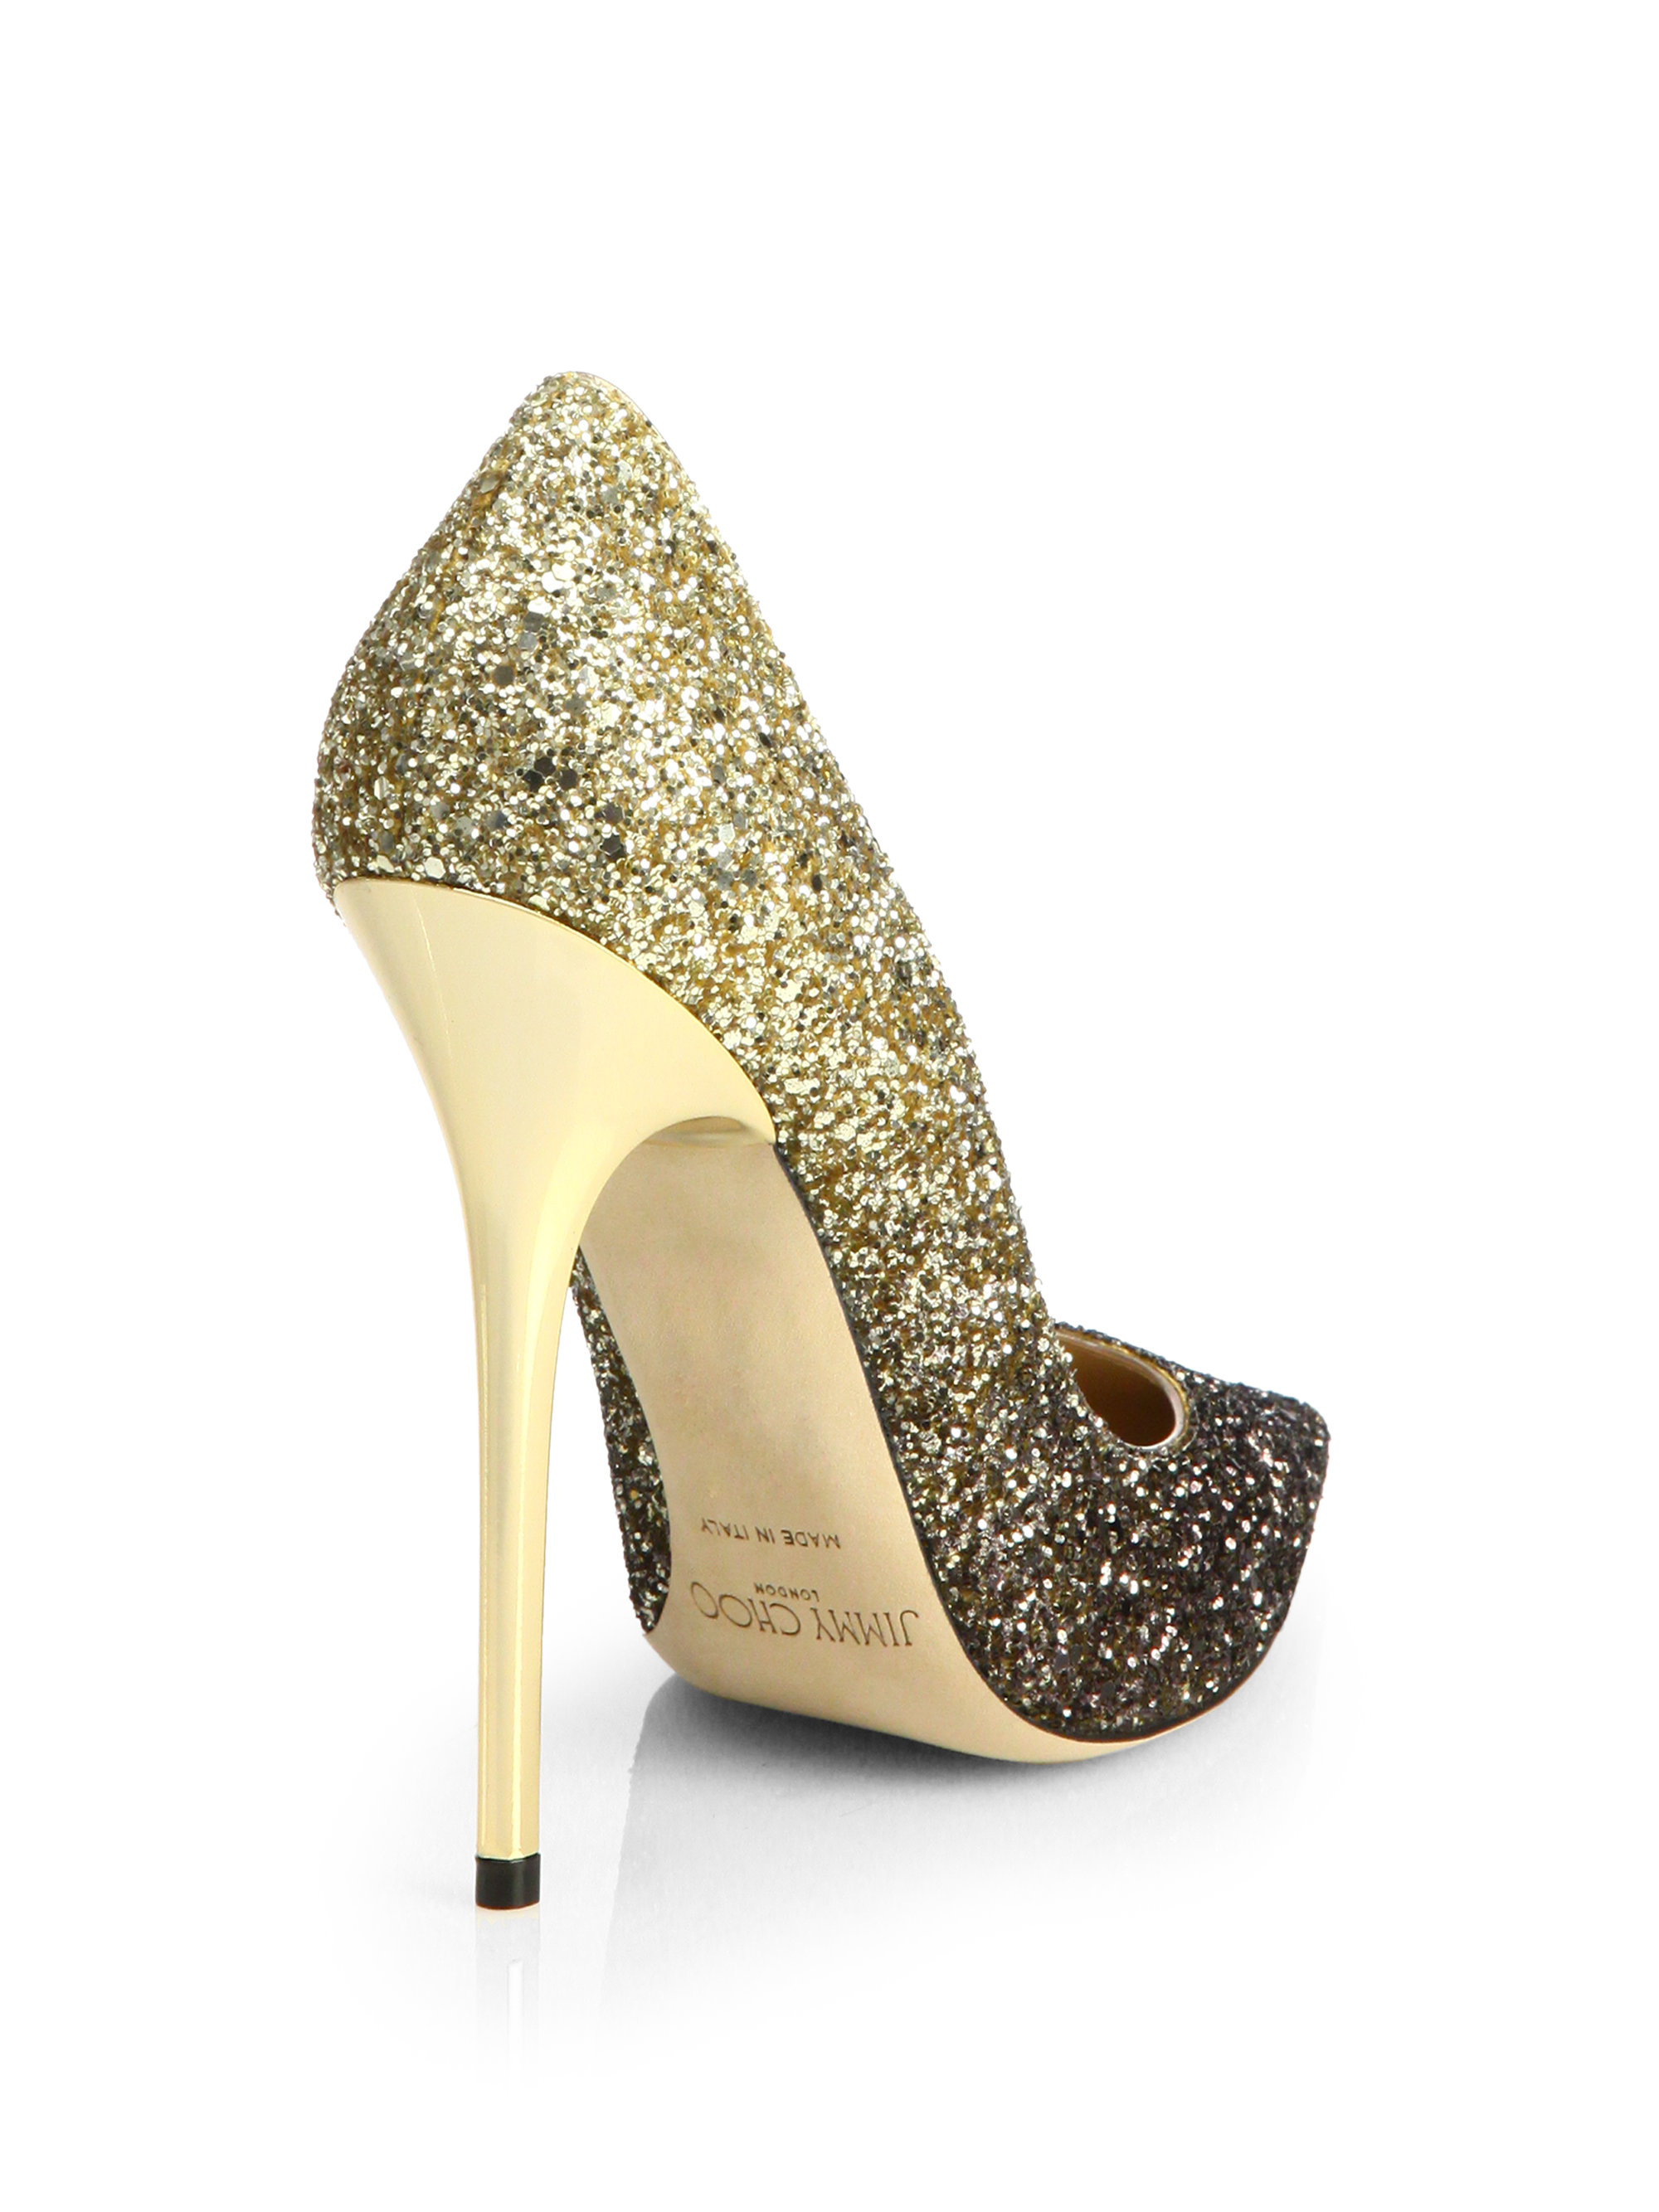 9d81c24edf ... release date lyst jimmy choo anouk 120 glitter degrade pumps in  metallic c21cf 2fcdf